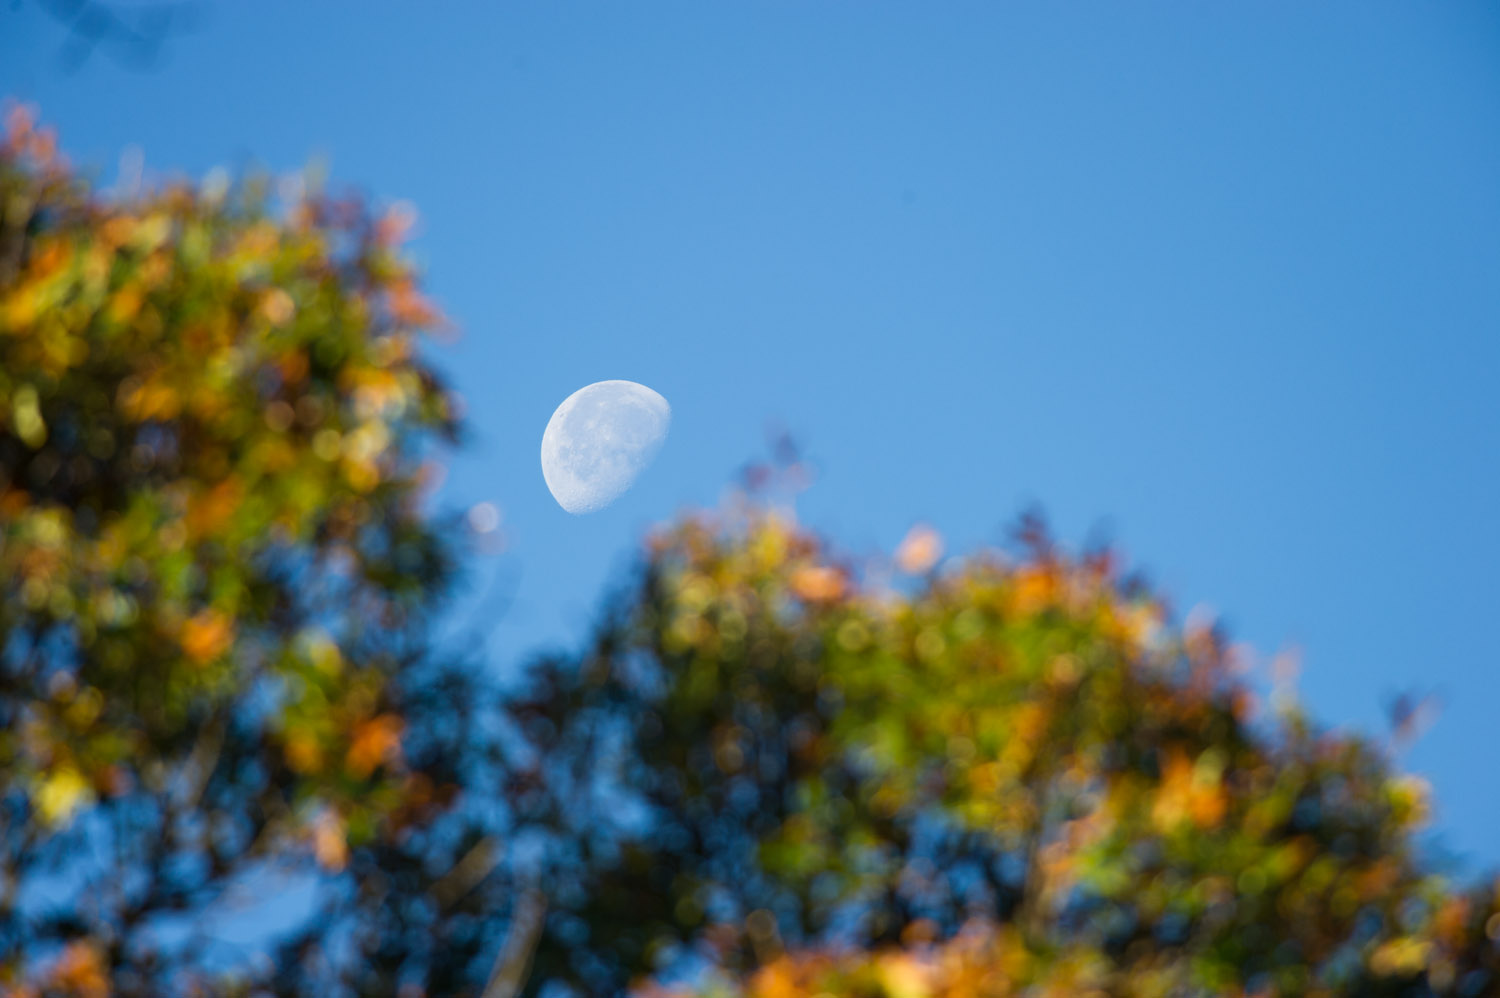 When the moon is visible during the day it can make for some interesting compositions.